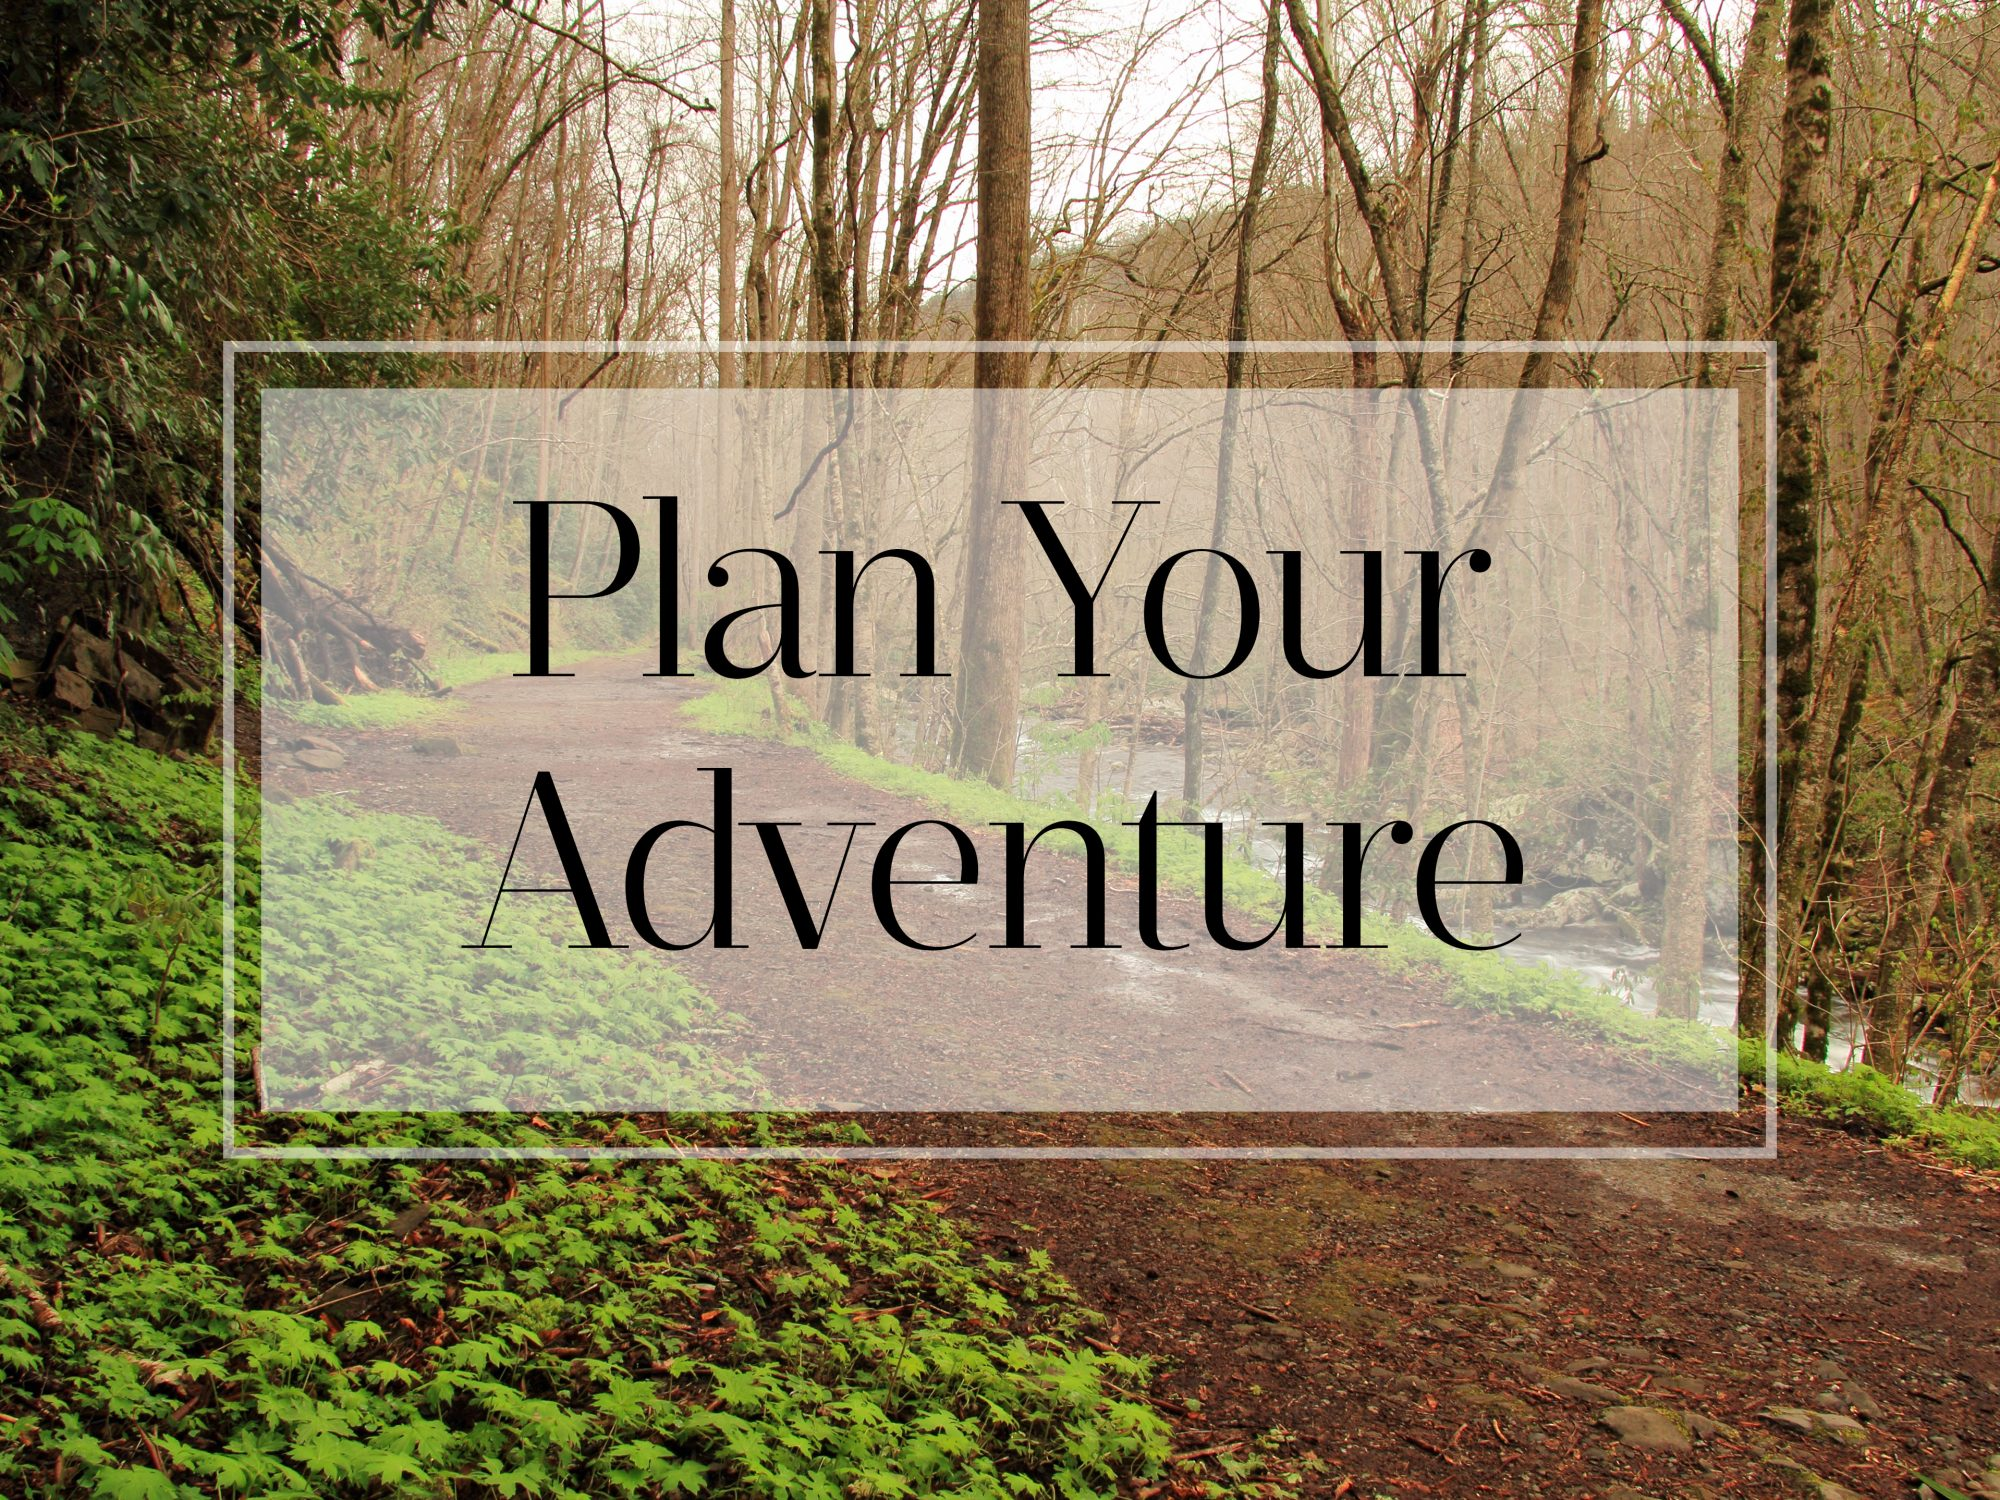 Plan Your Adventure in the Great Smoky Mountains